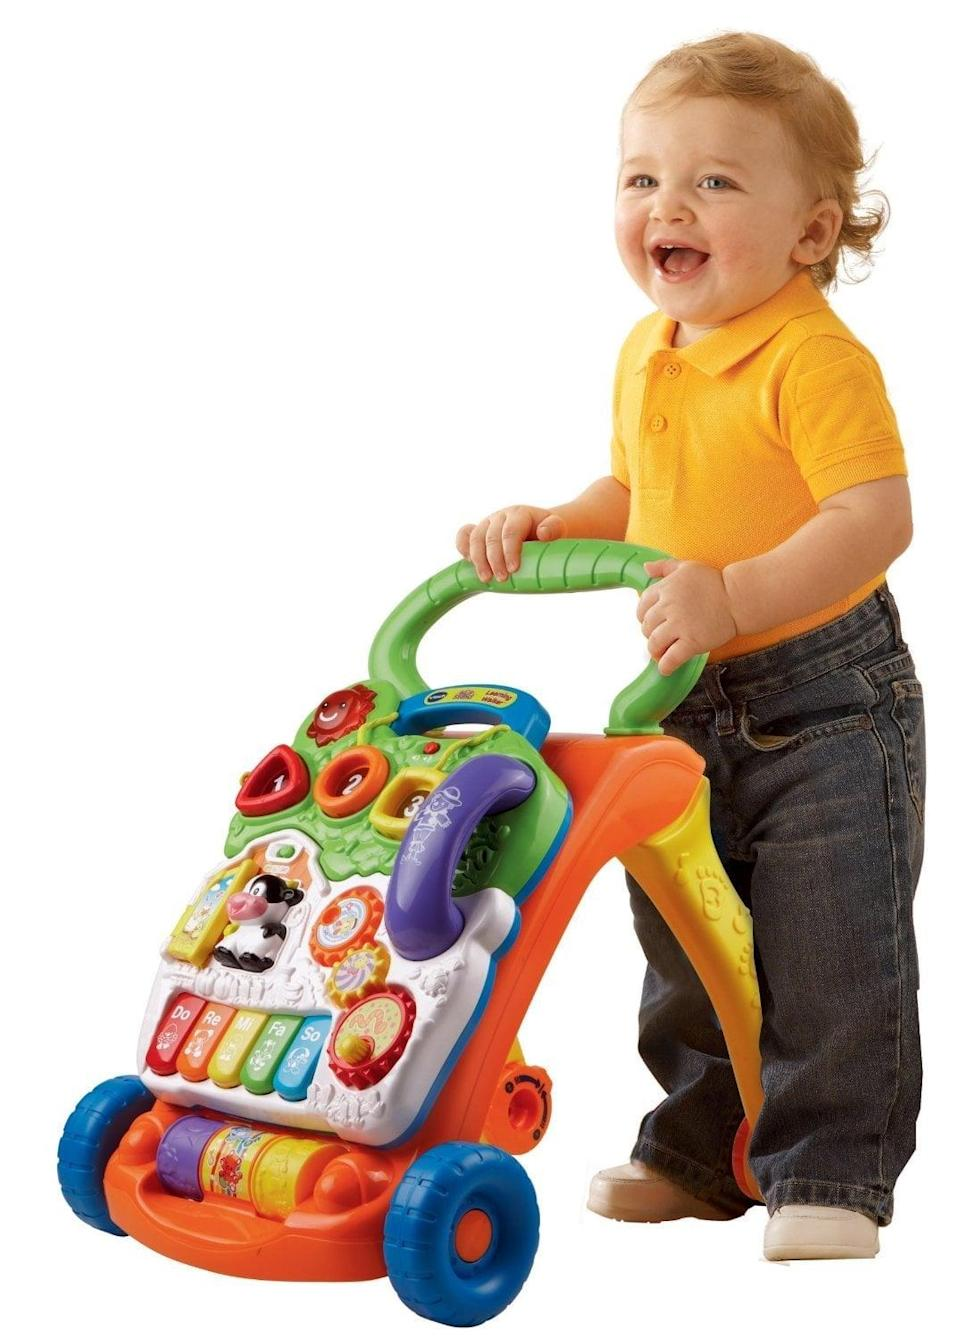 <p>Your toddler will grow quickly, but their toys can grow with them too! This <span>VTech Sit-to-Stand Learning Walker</span> ($35) is perfect to help them get moving.</p>